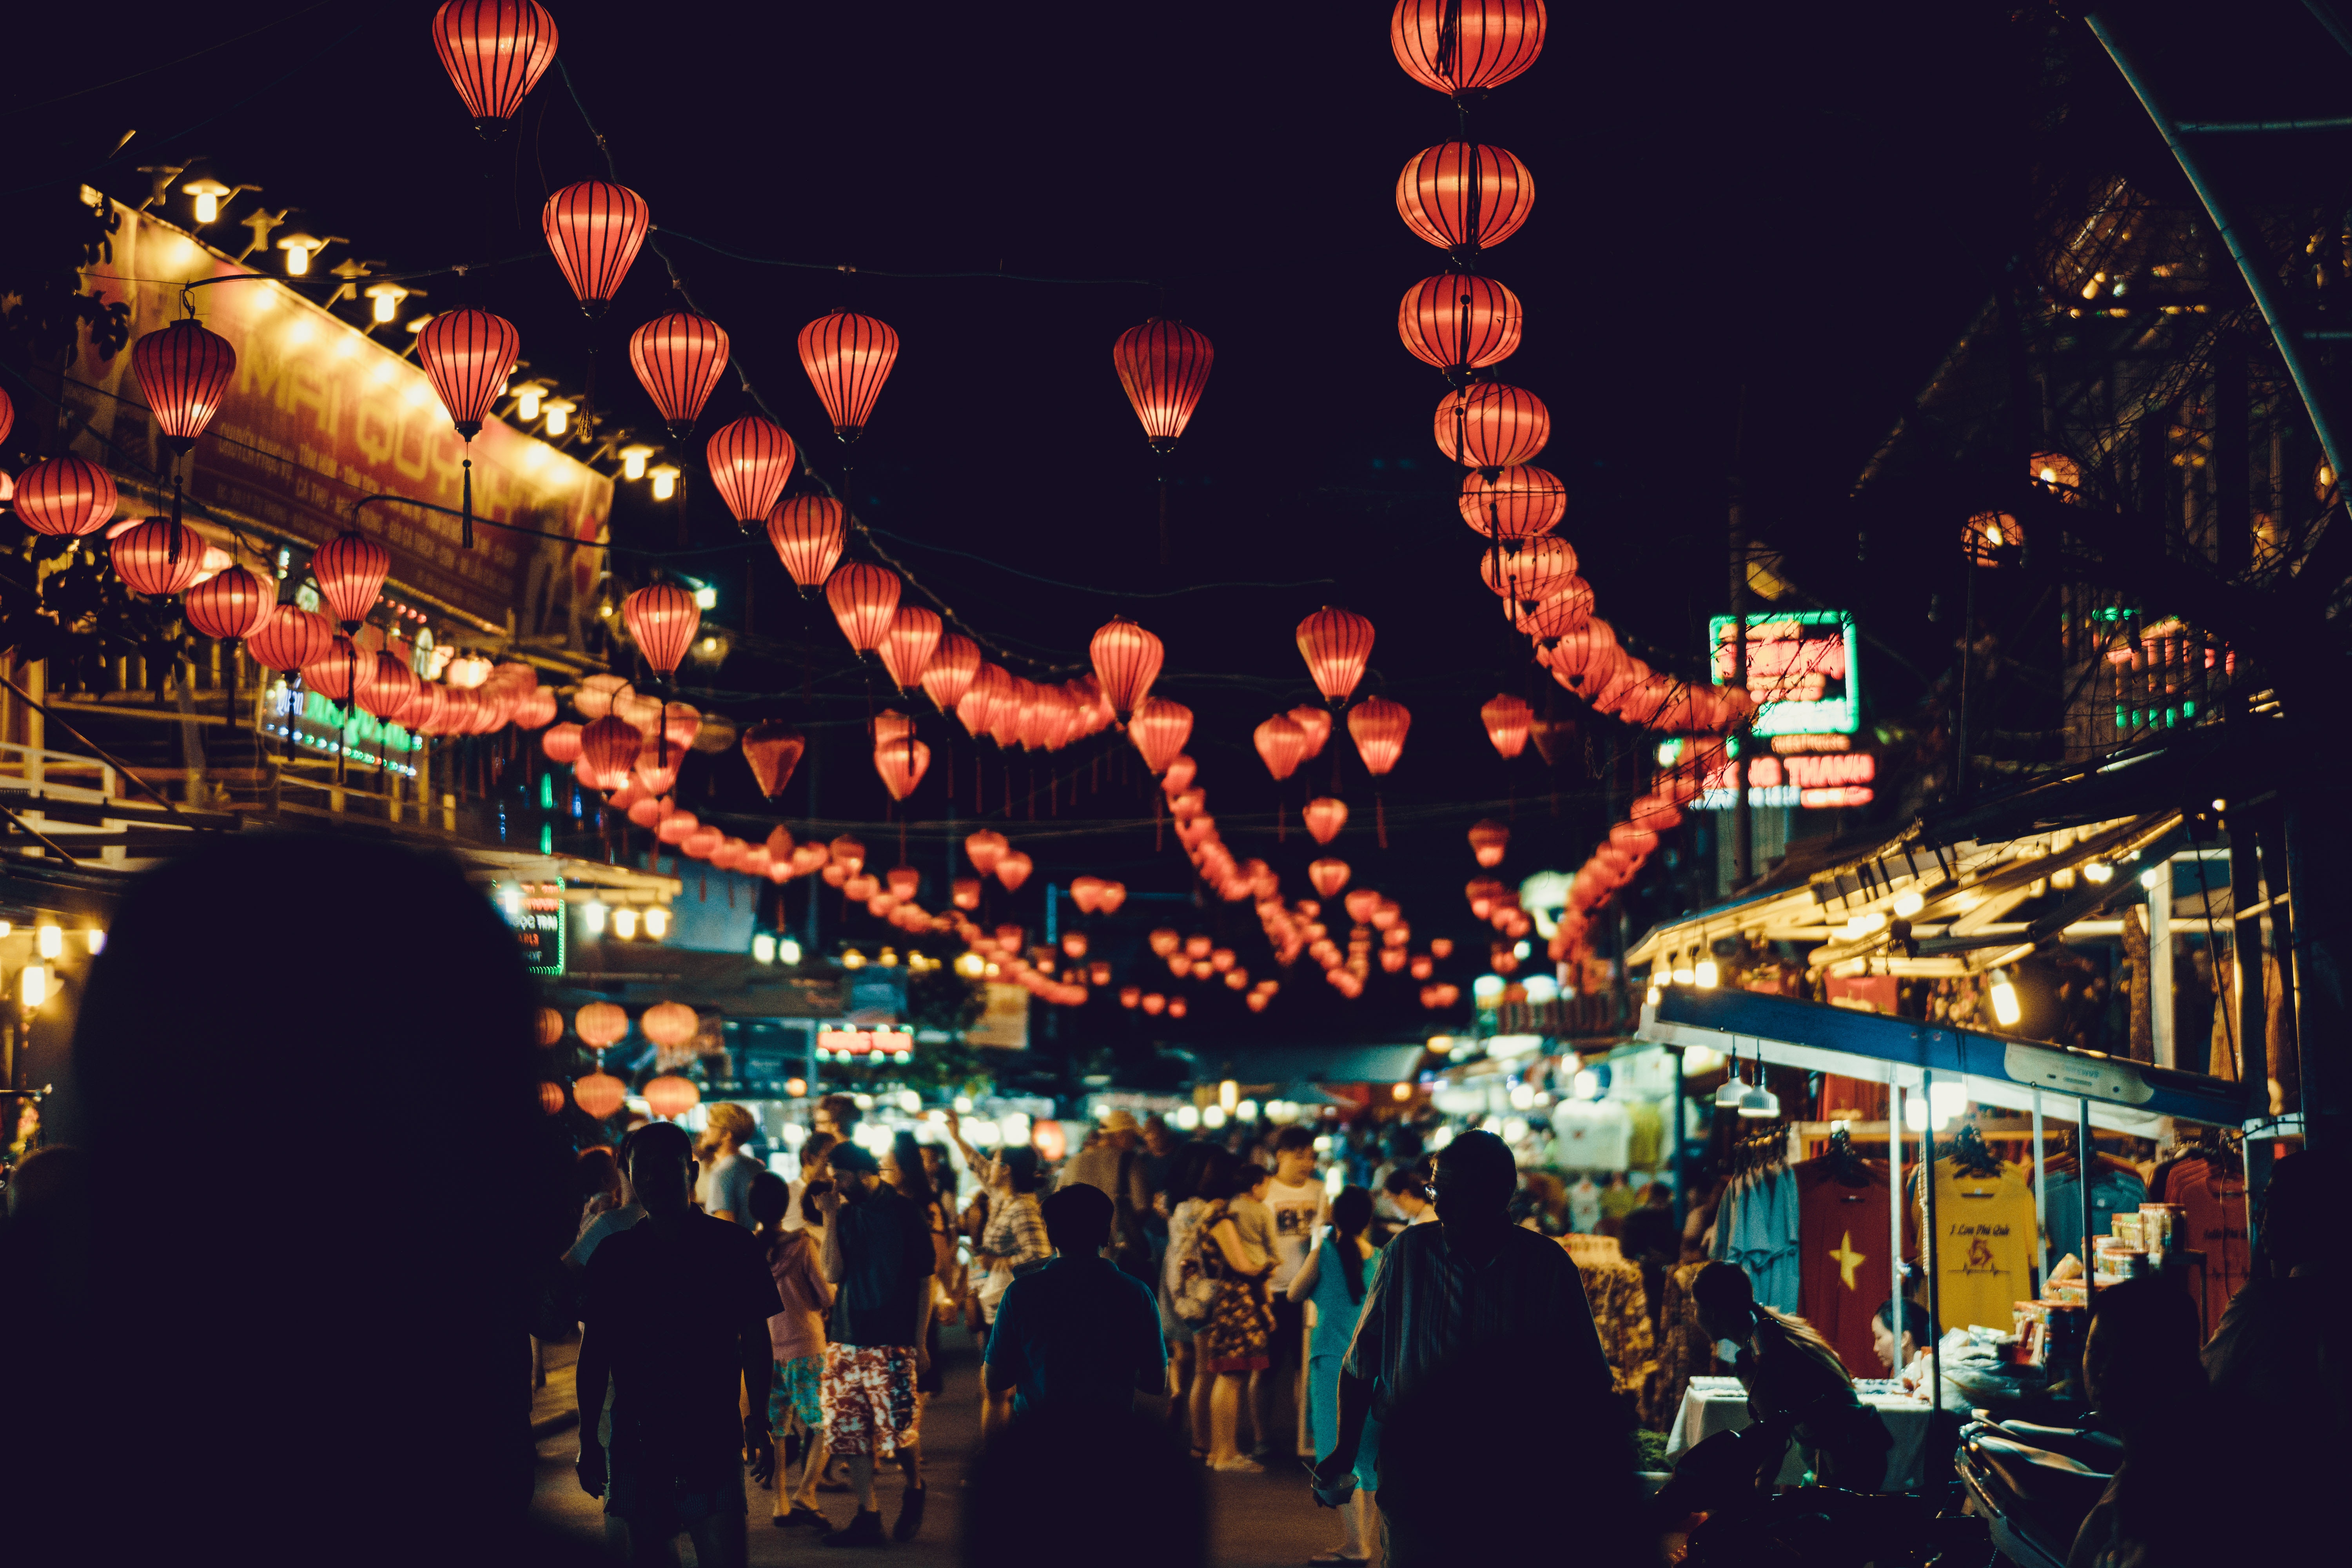 hanging lights and nightlife in Vietnam